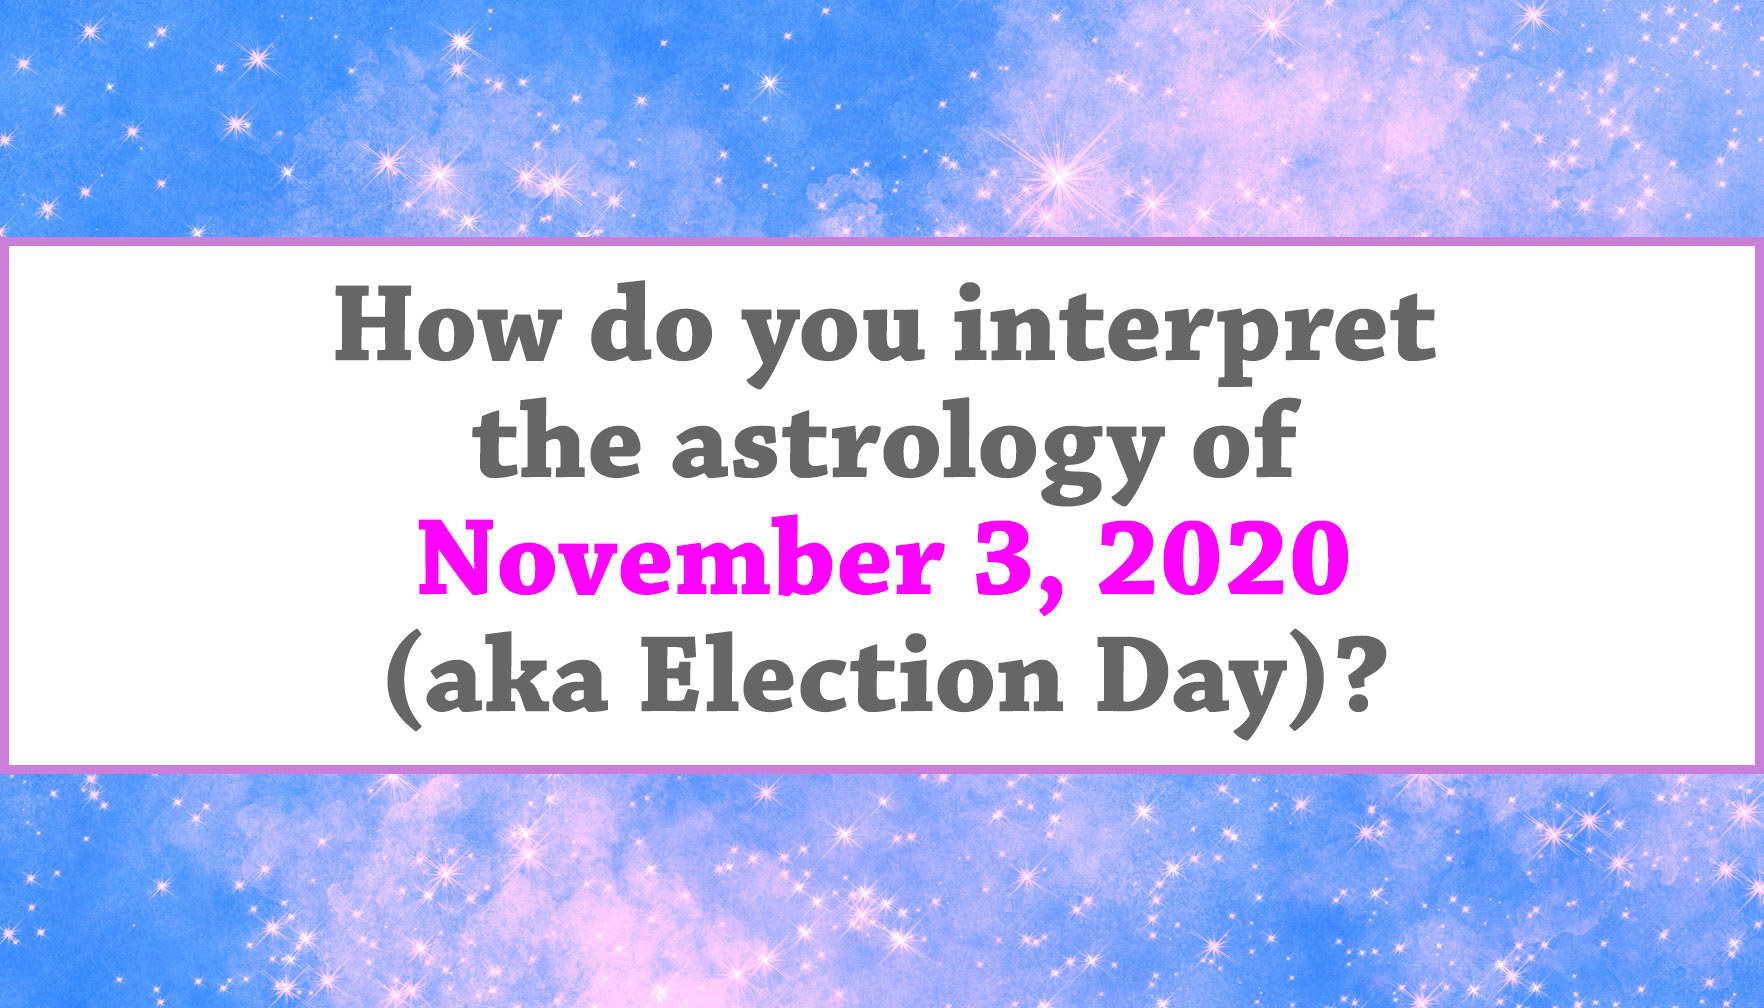 """How do you interpret the astrology of November 3, 2020 (aka Election Day)?"""